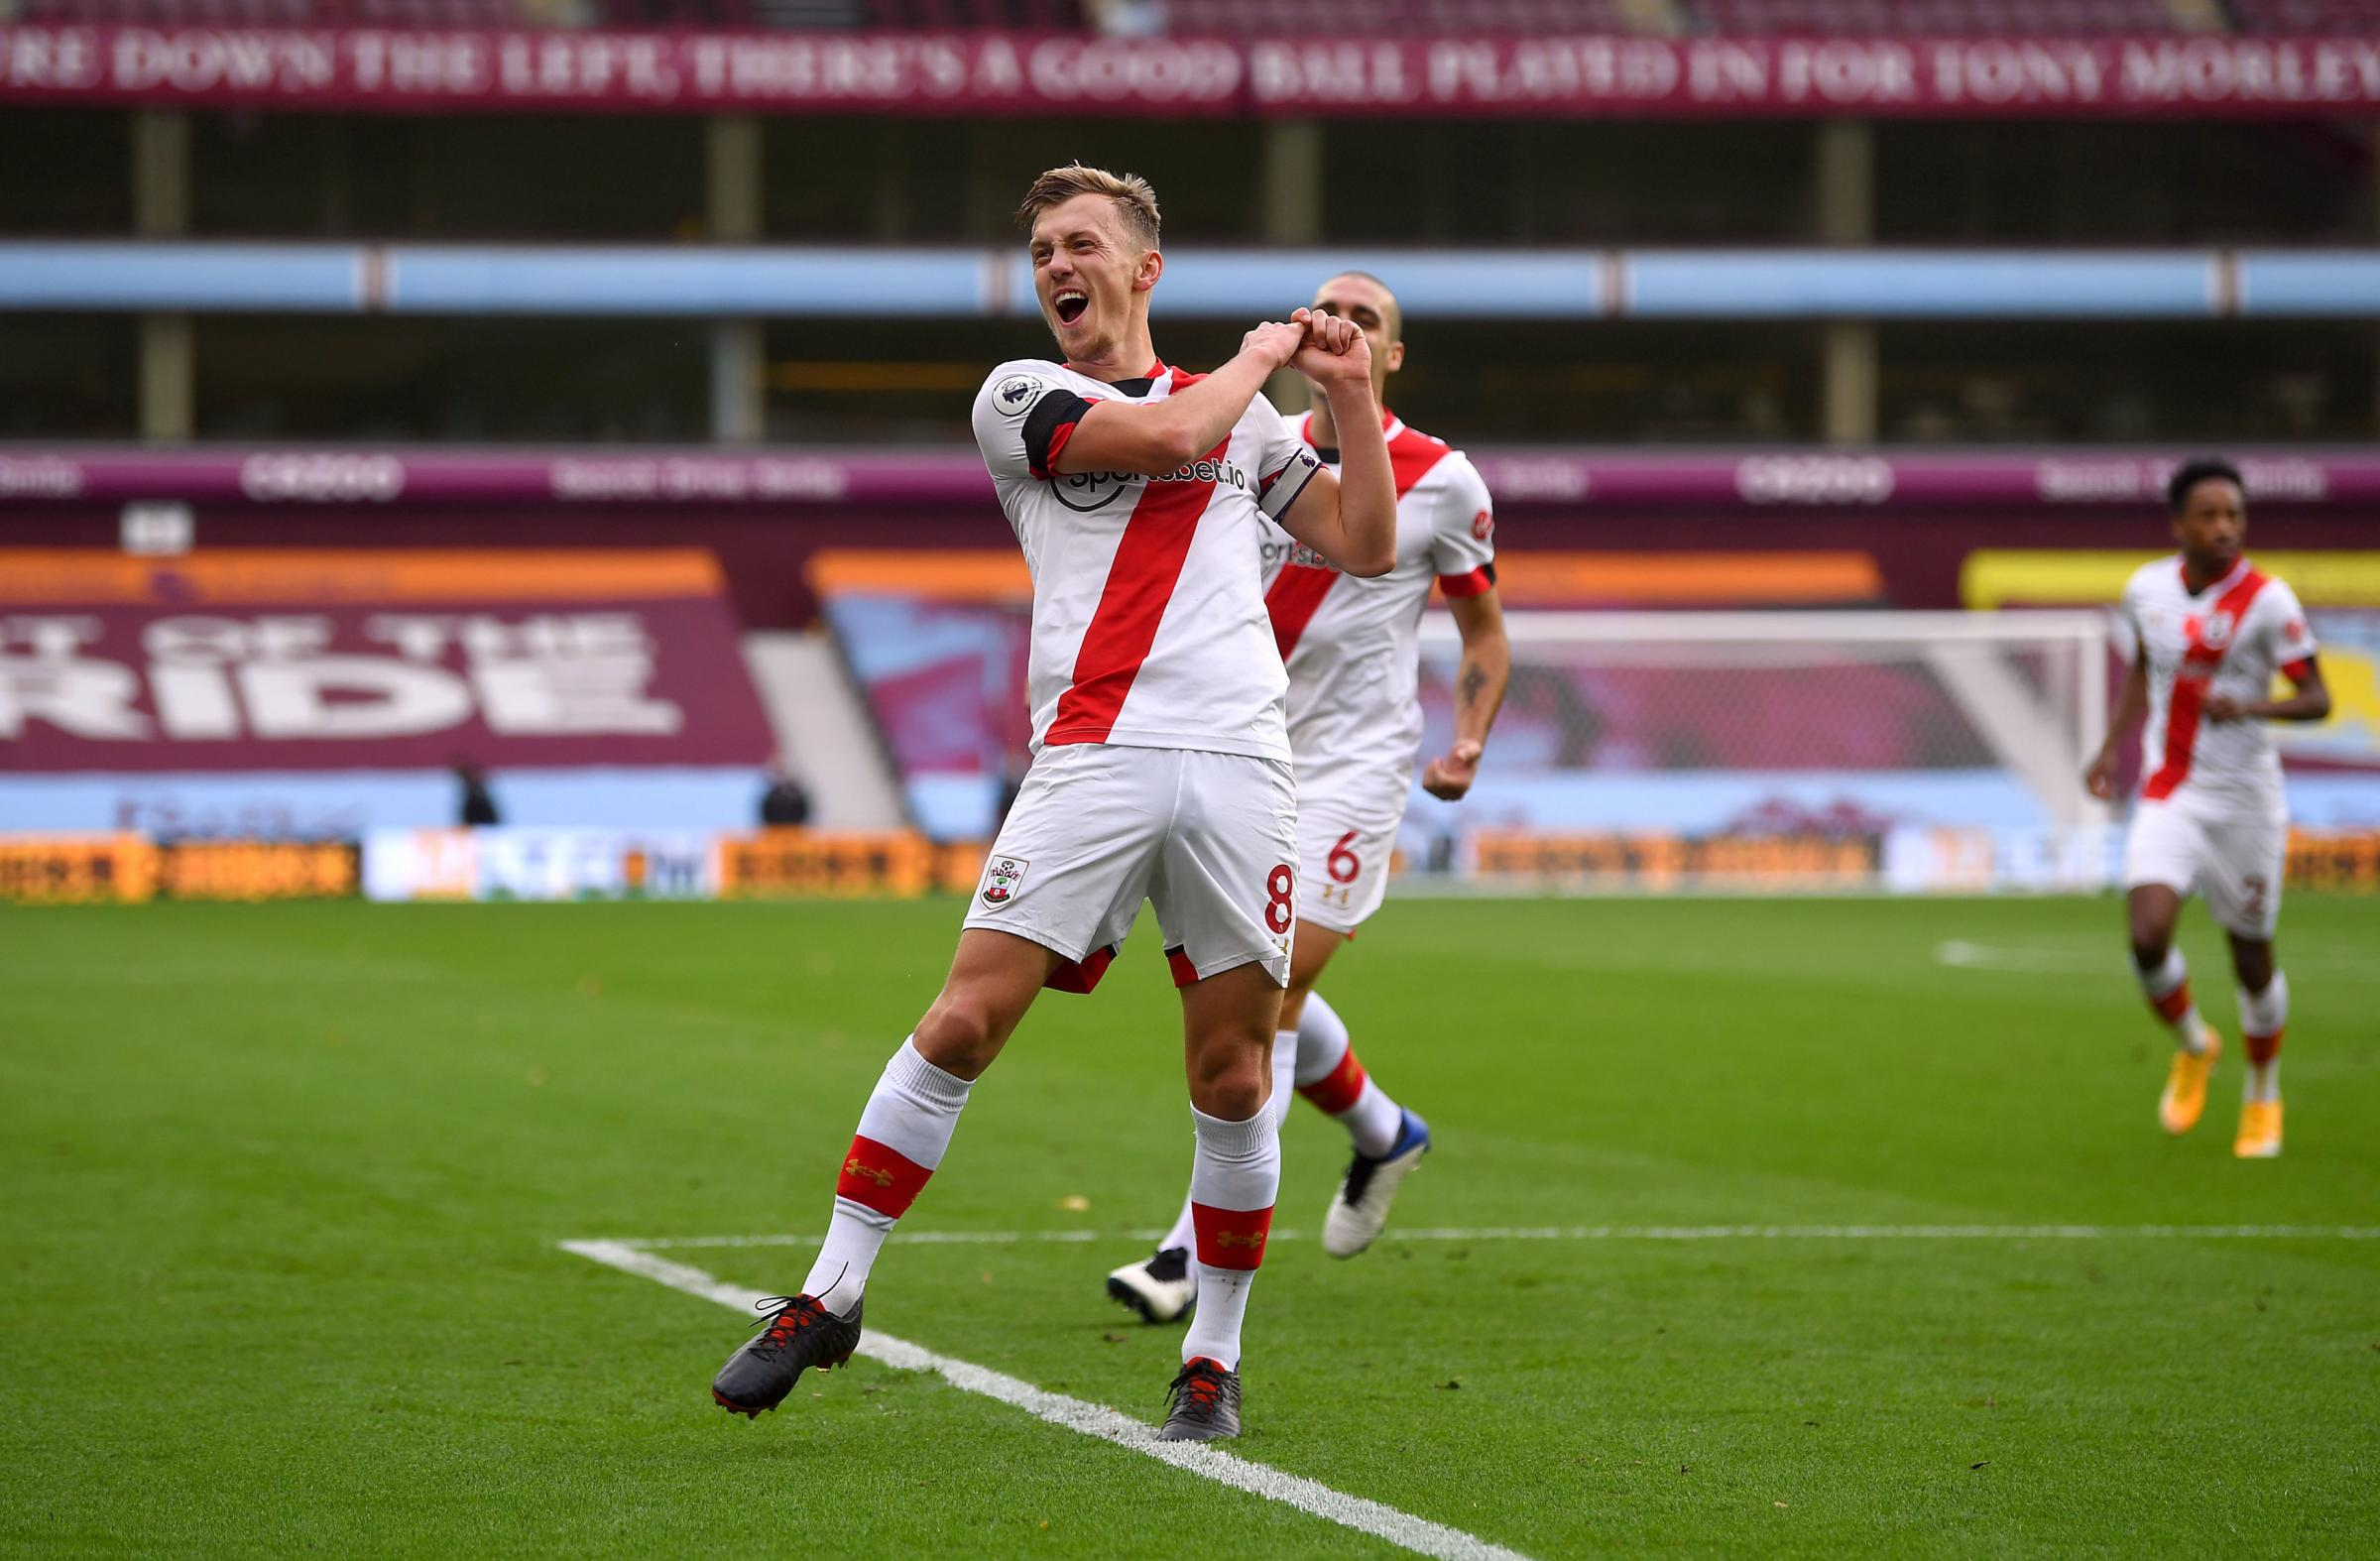 Ward-Prowse nominated for Premier League player of the month